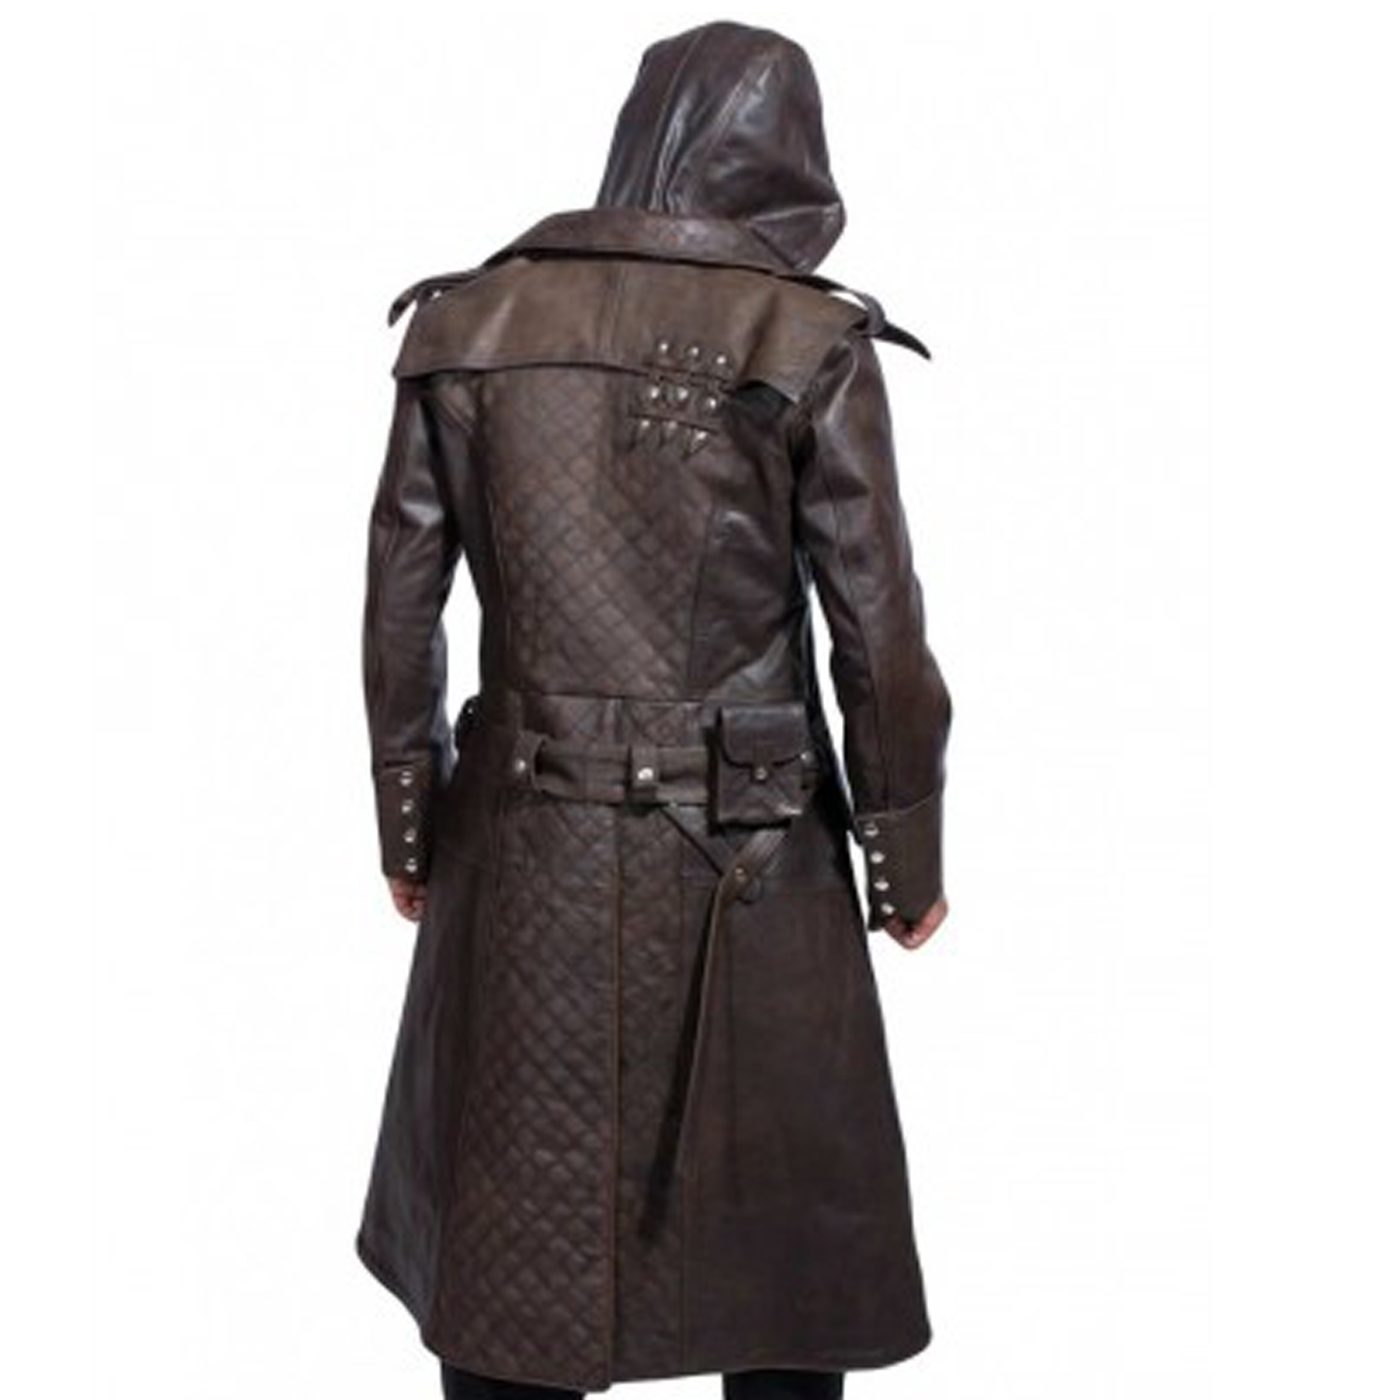 Hooded Brown Leather Trench Coat 1.